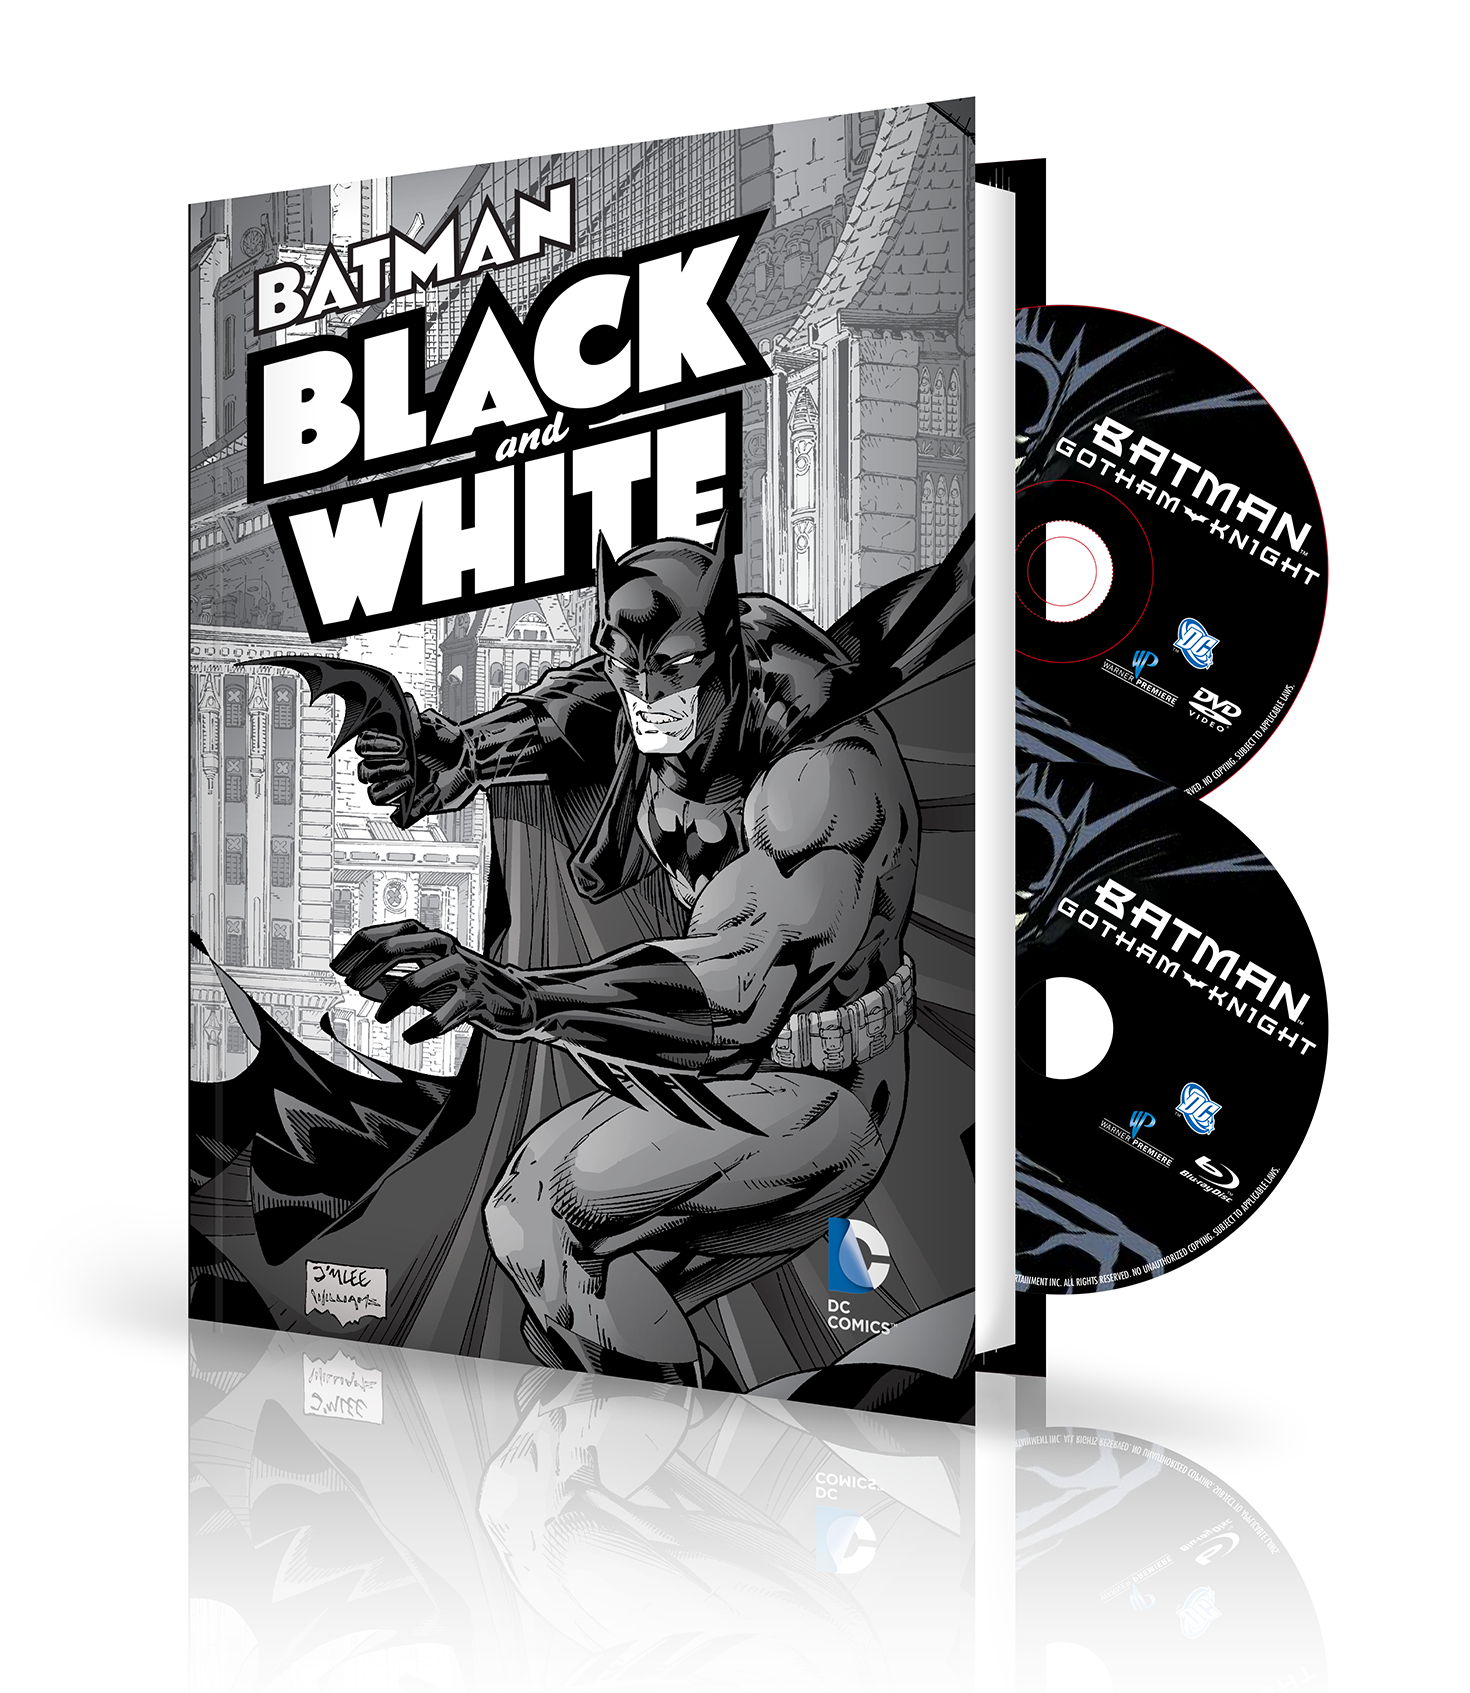 BATMAN BLACK & WHITE HC VOL 1 BOOK & DVD BLU RAY SET